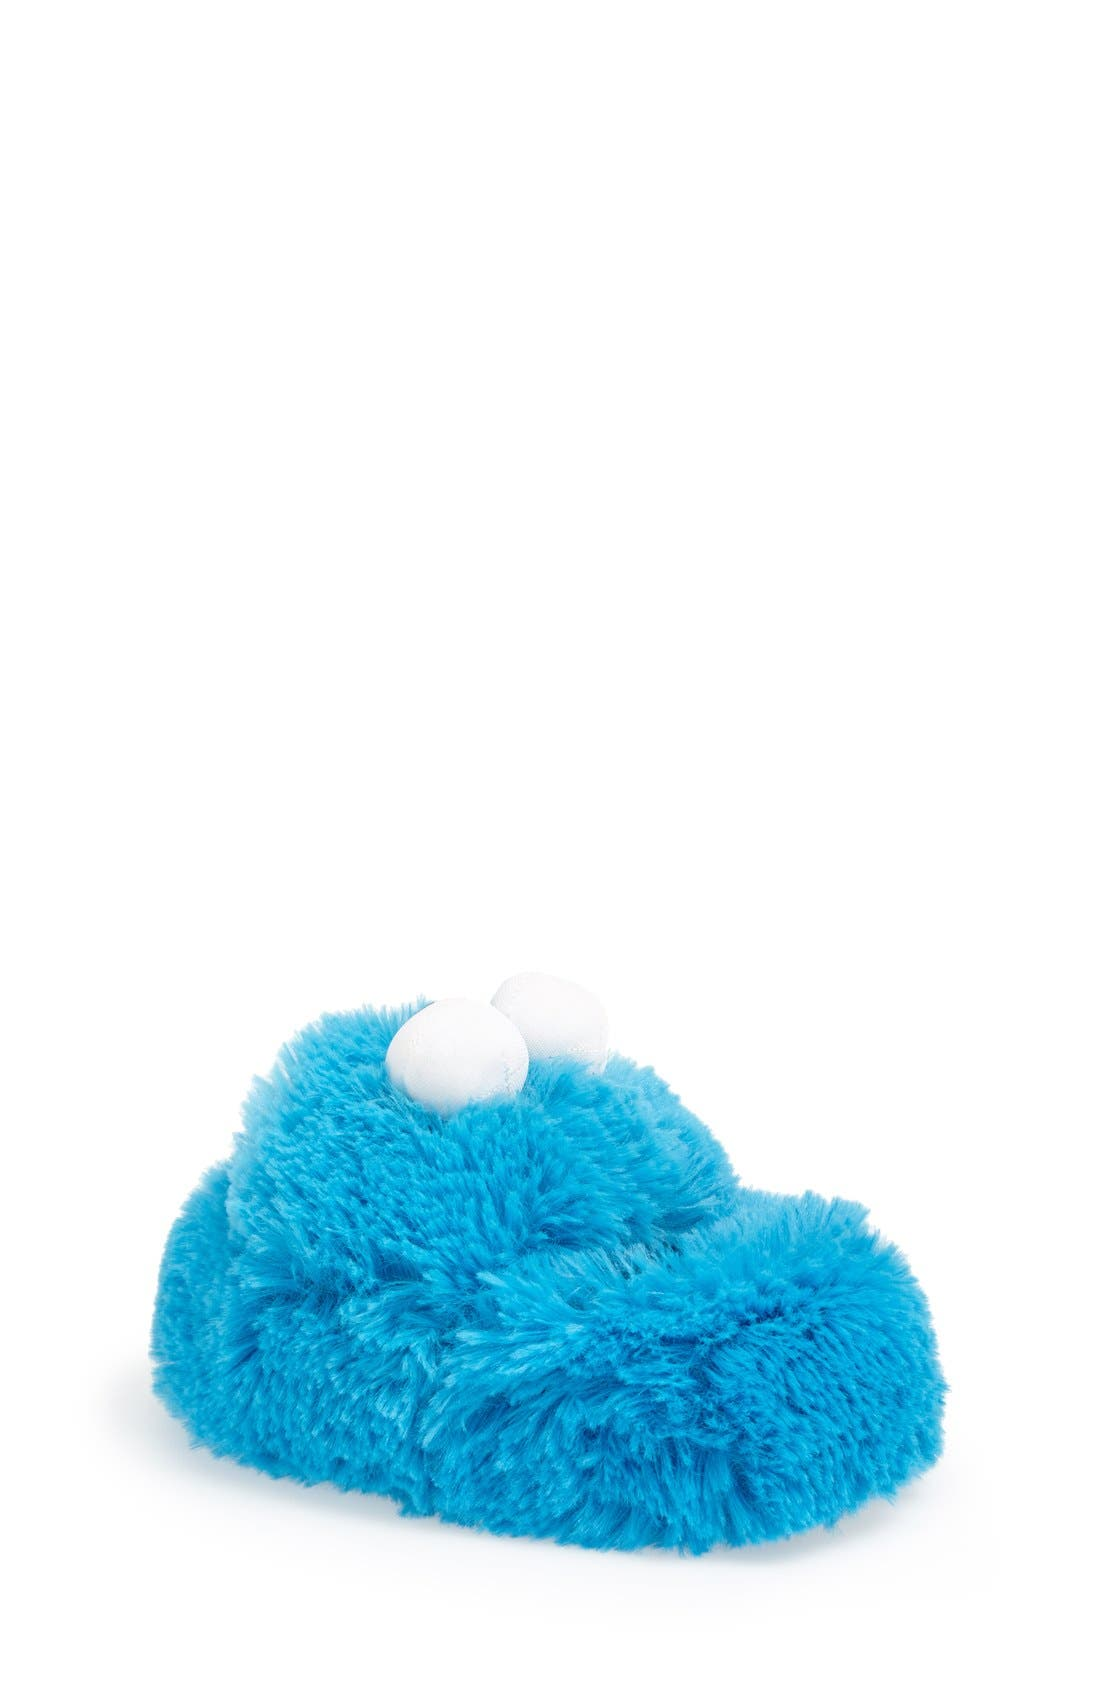 STRIDE RITE,                             'Cookie Monster<sup>™</sup>' Slipper,                             Alternate thumbnail 3, color,                             400